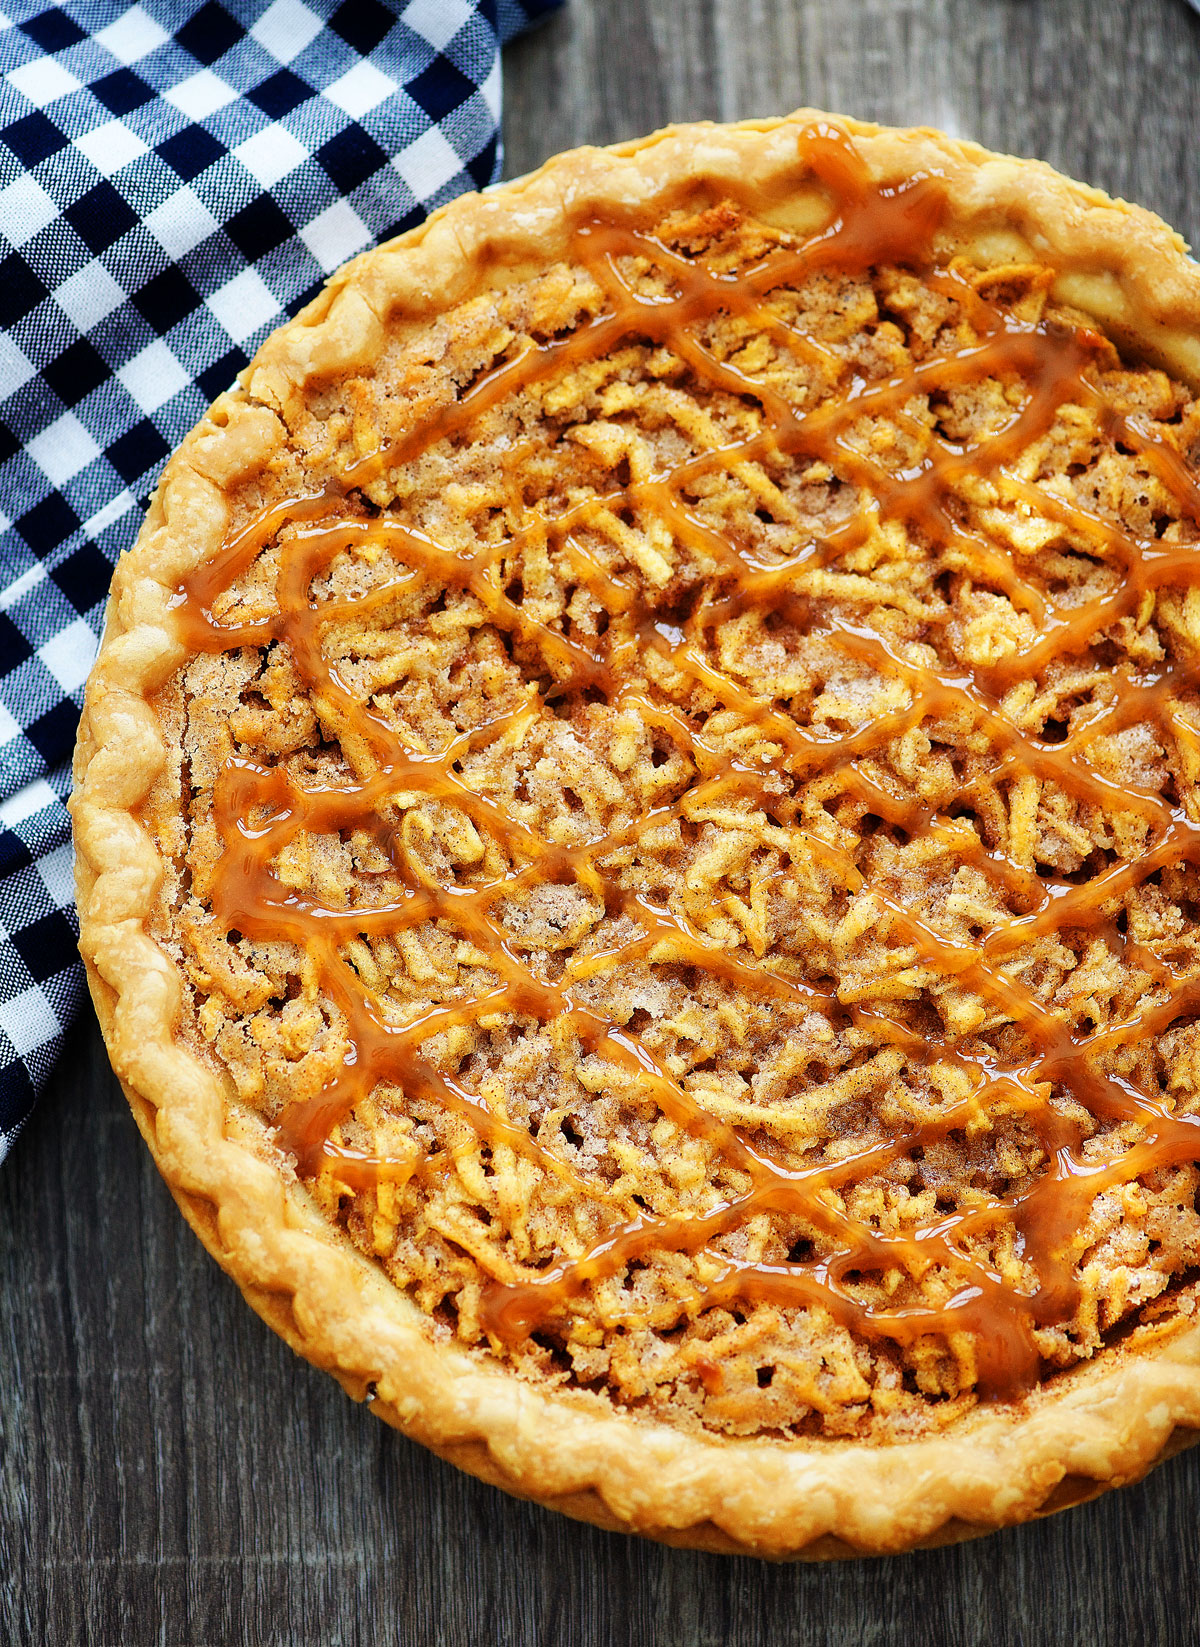 Shredded Apple Pie is filled with grated red apples and has cinnamon flavor. Life-in-the-Lofthouse.com